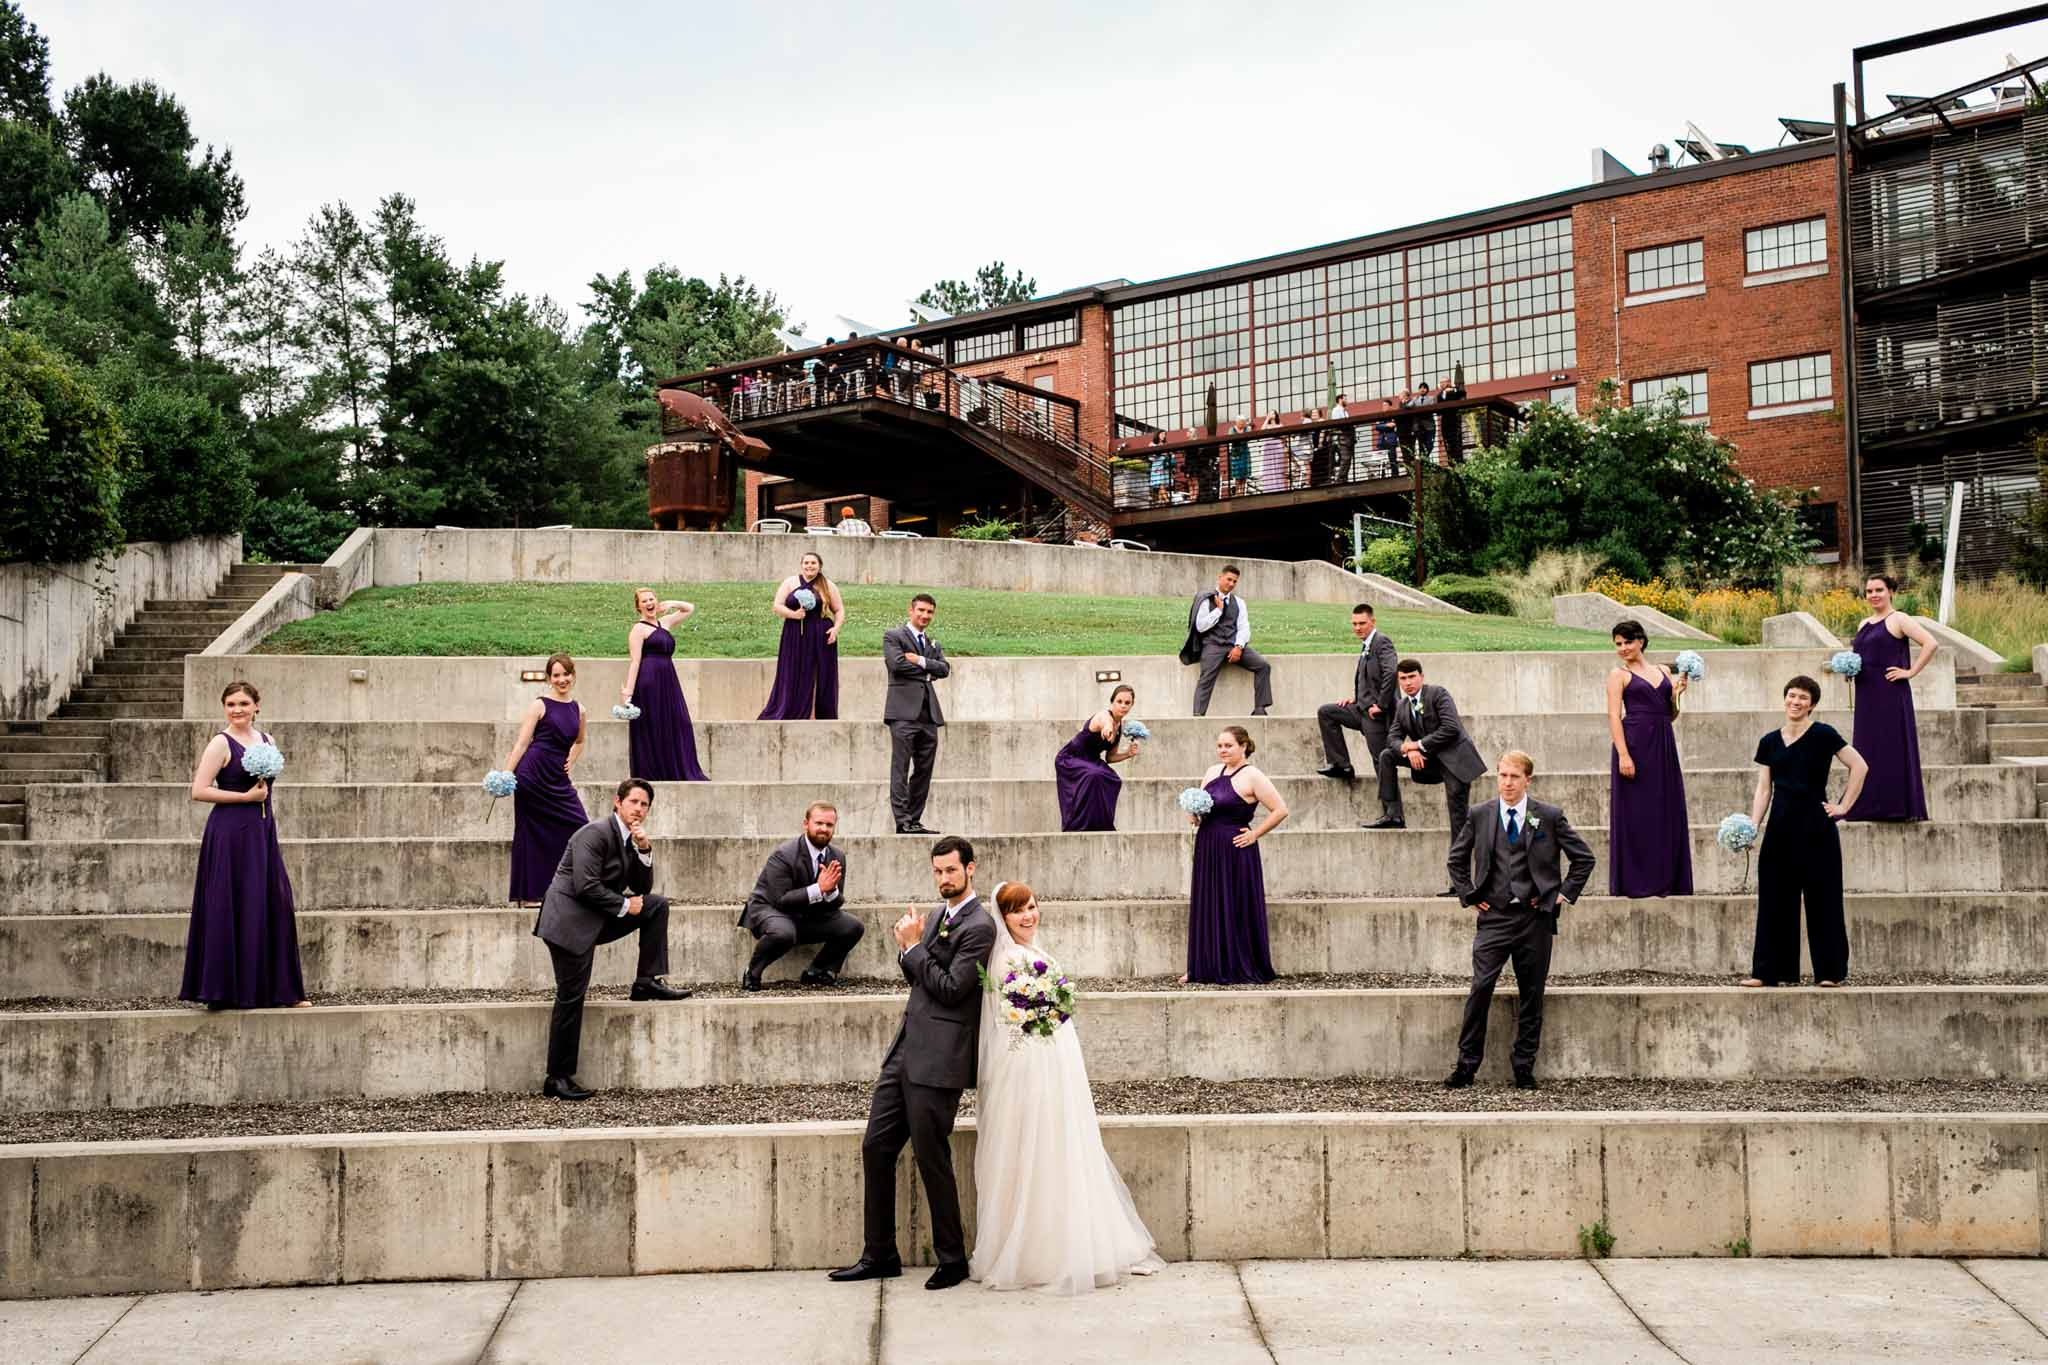 Haw River Ballroom Wedding | Durham Photographer | By G. Lin Photography | Wedding party posing outside at amphitheater